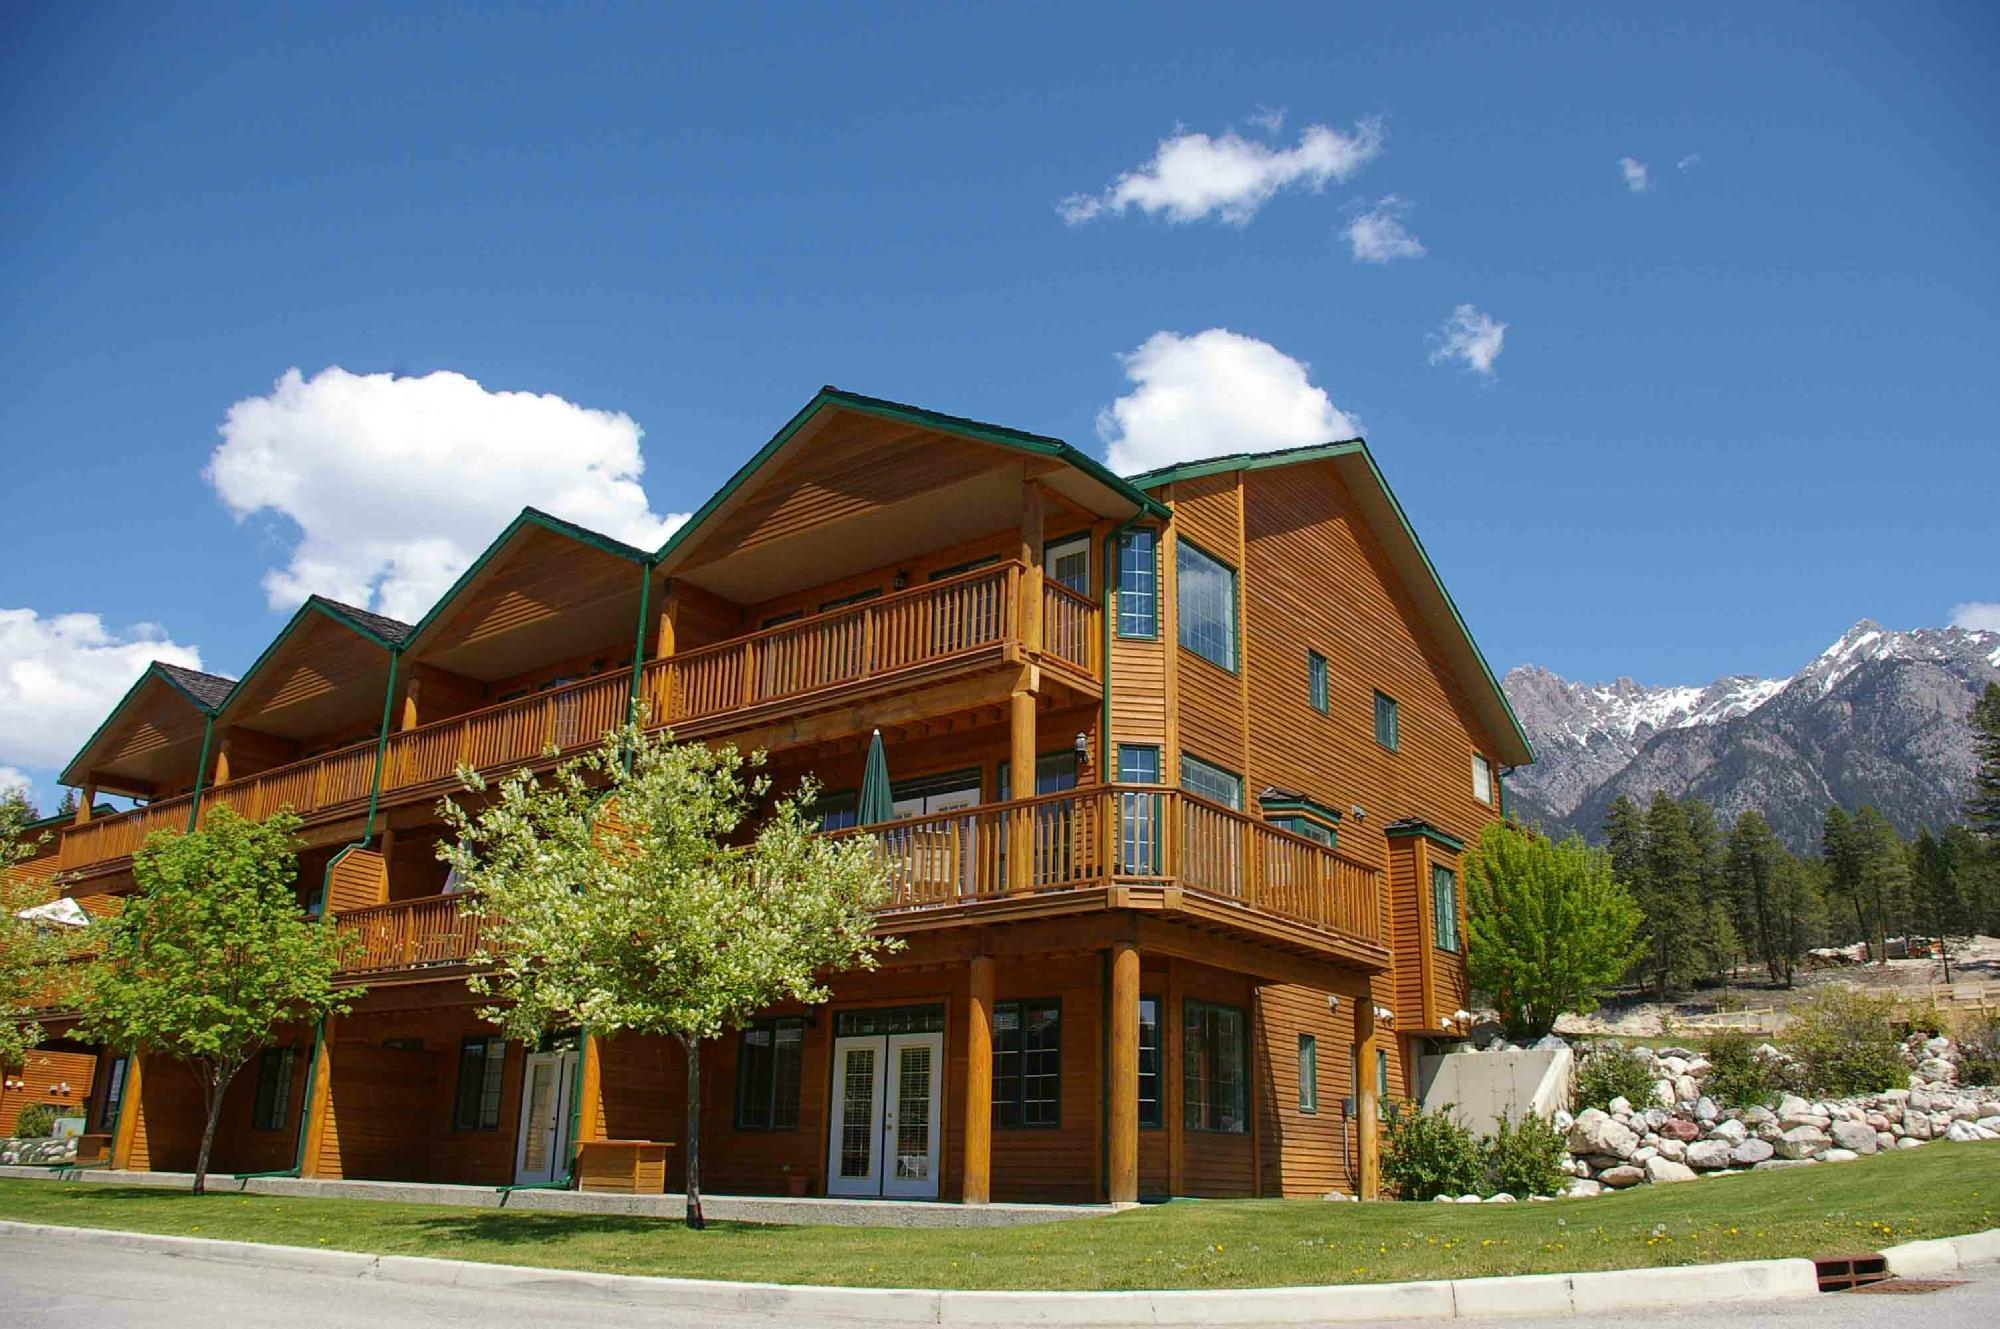 Marble Canyon & The Residences at Fairmont Ridge